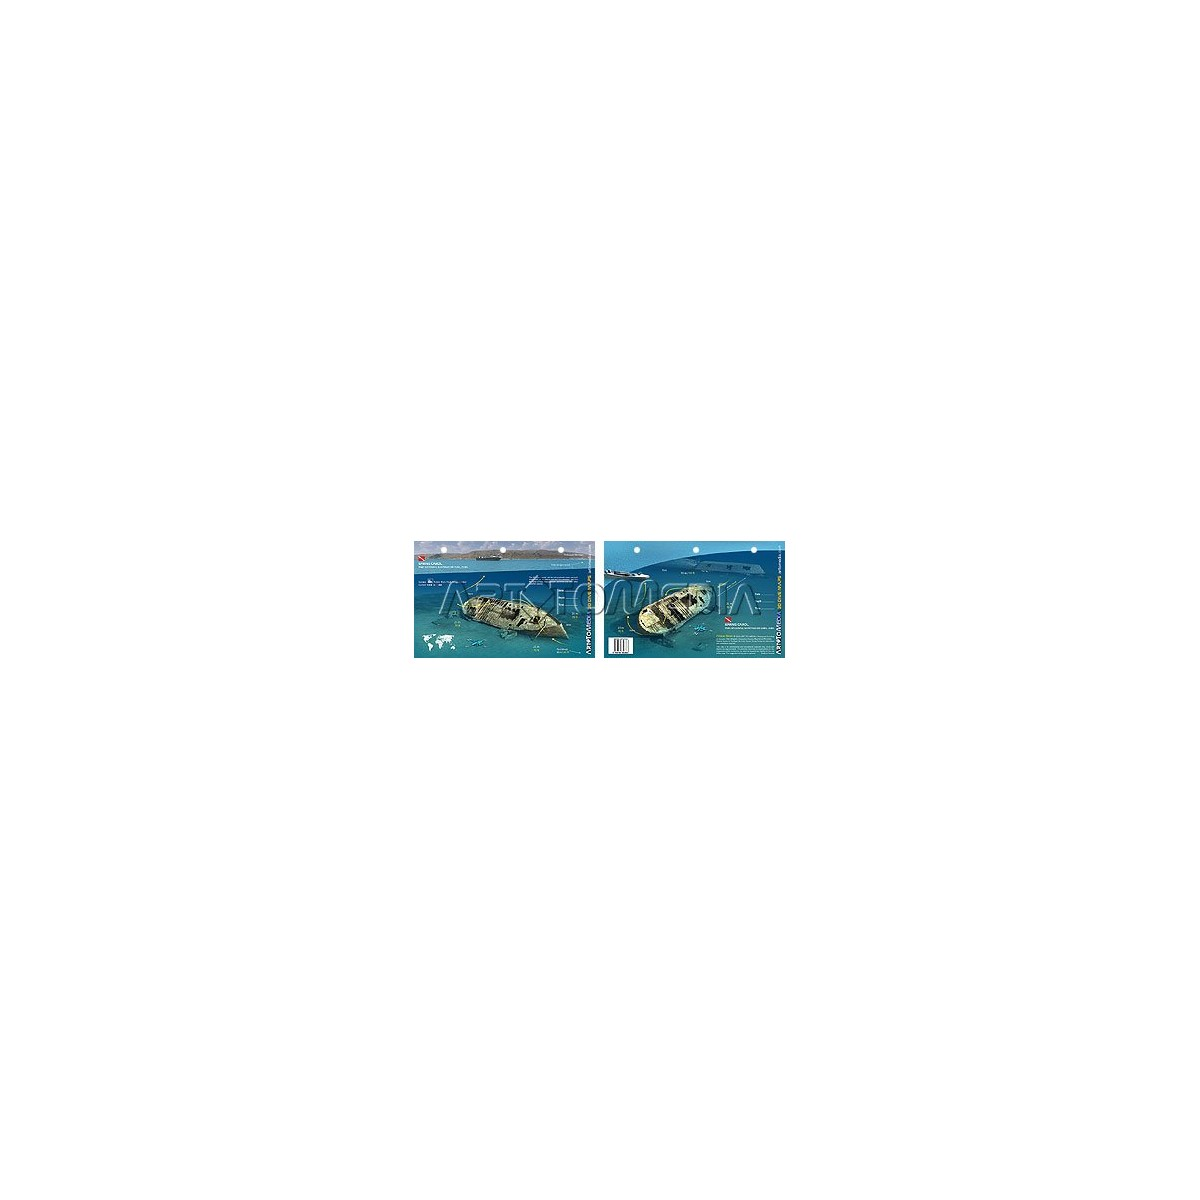 Spring Carol in Santiago de Cuba (8.5 x 5.5 Inches) (21.6 x 15cm) - New Art to Media Underwater Waterproof 3D Dive Site Map